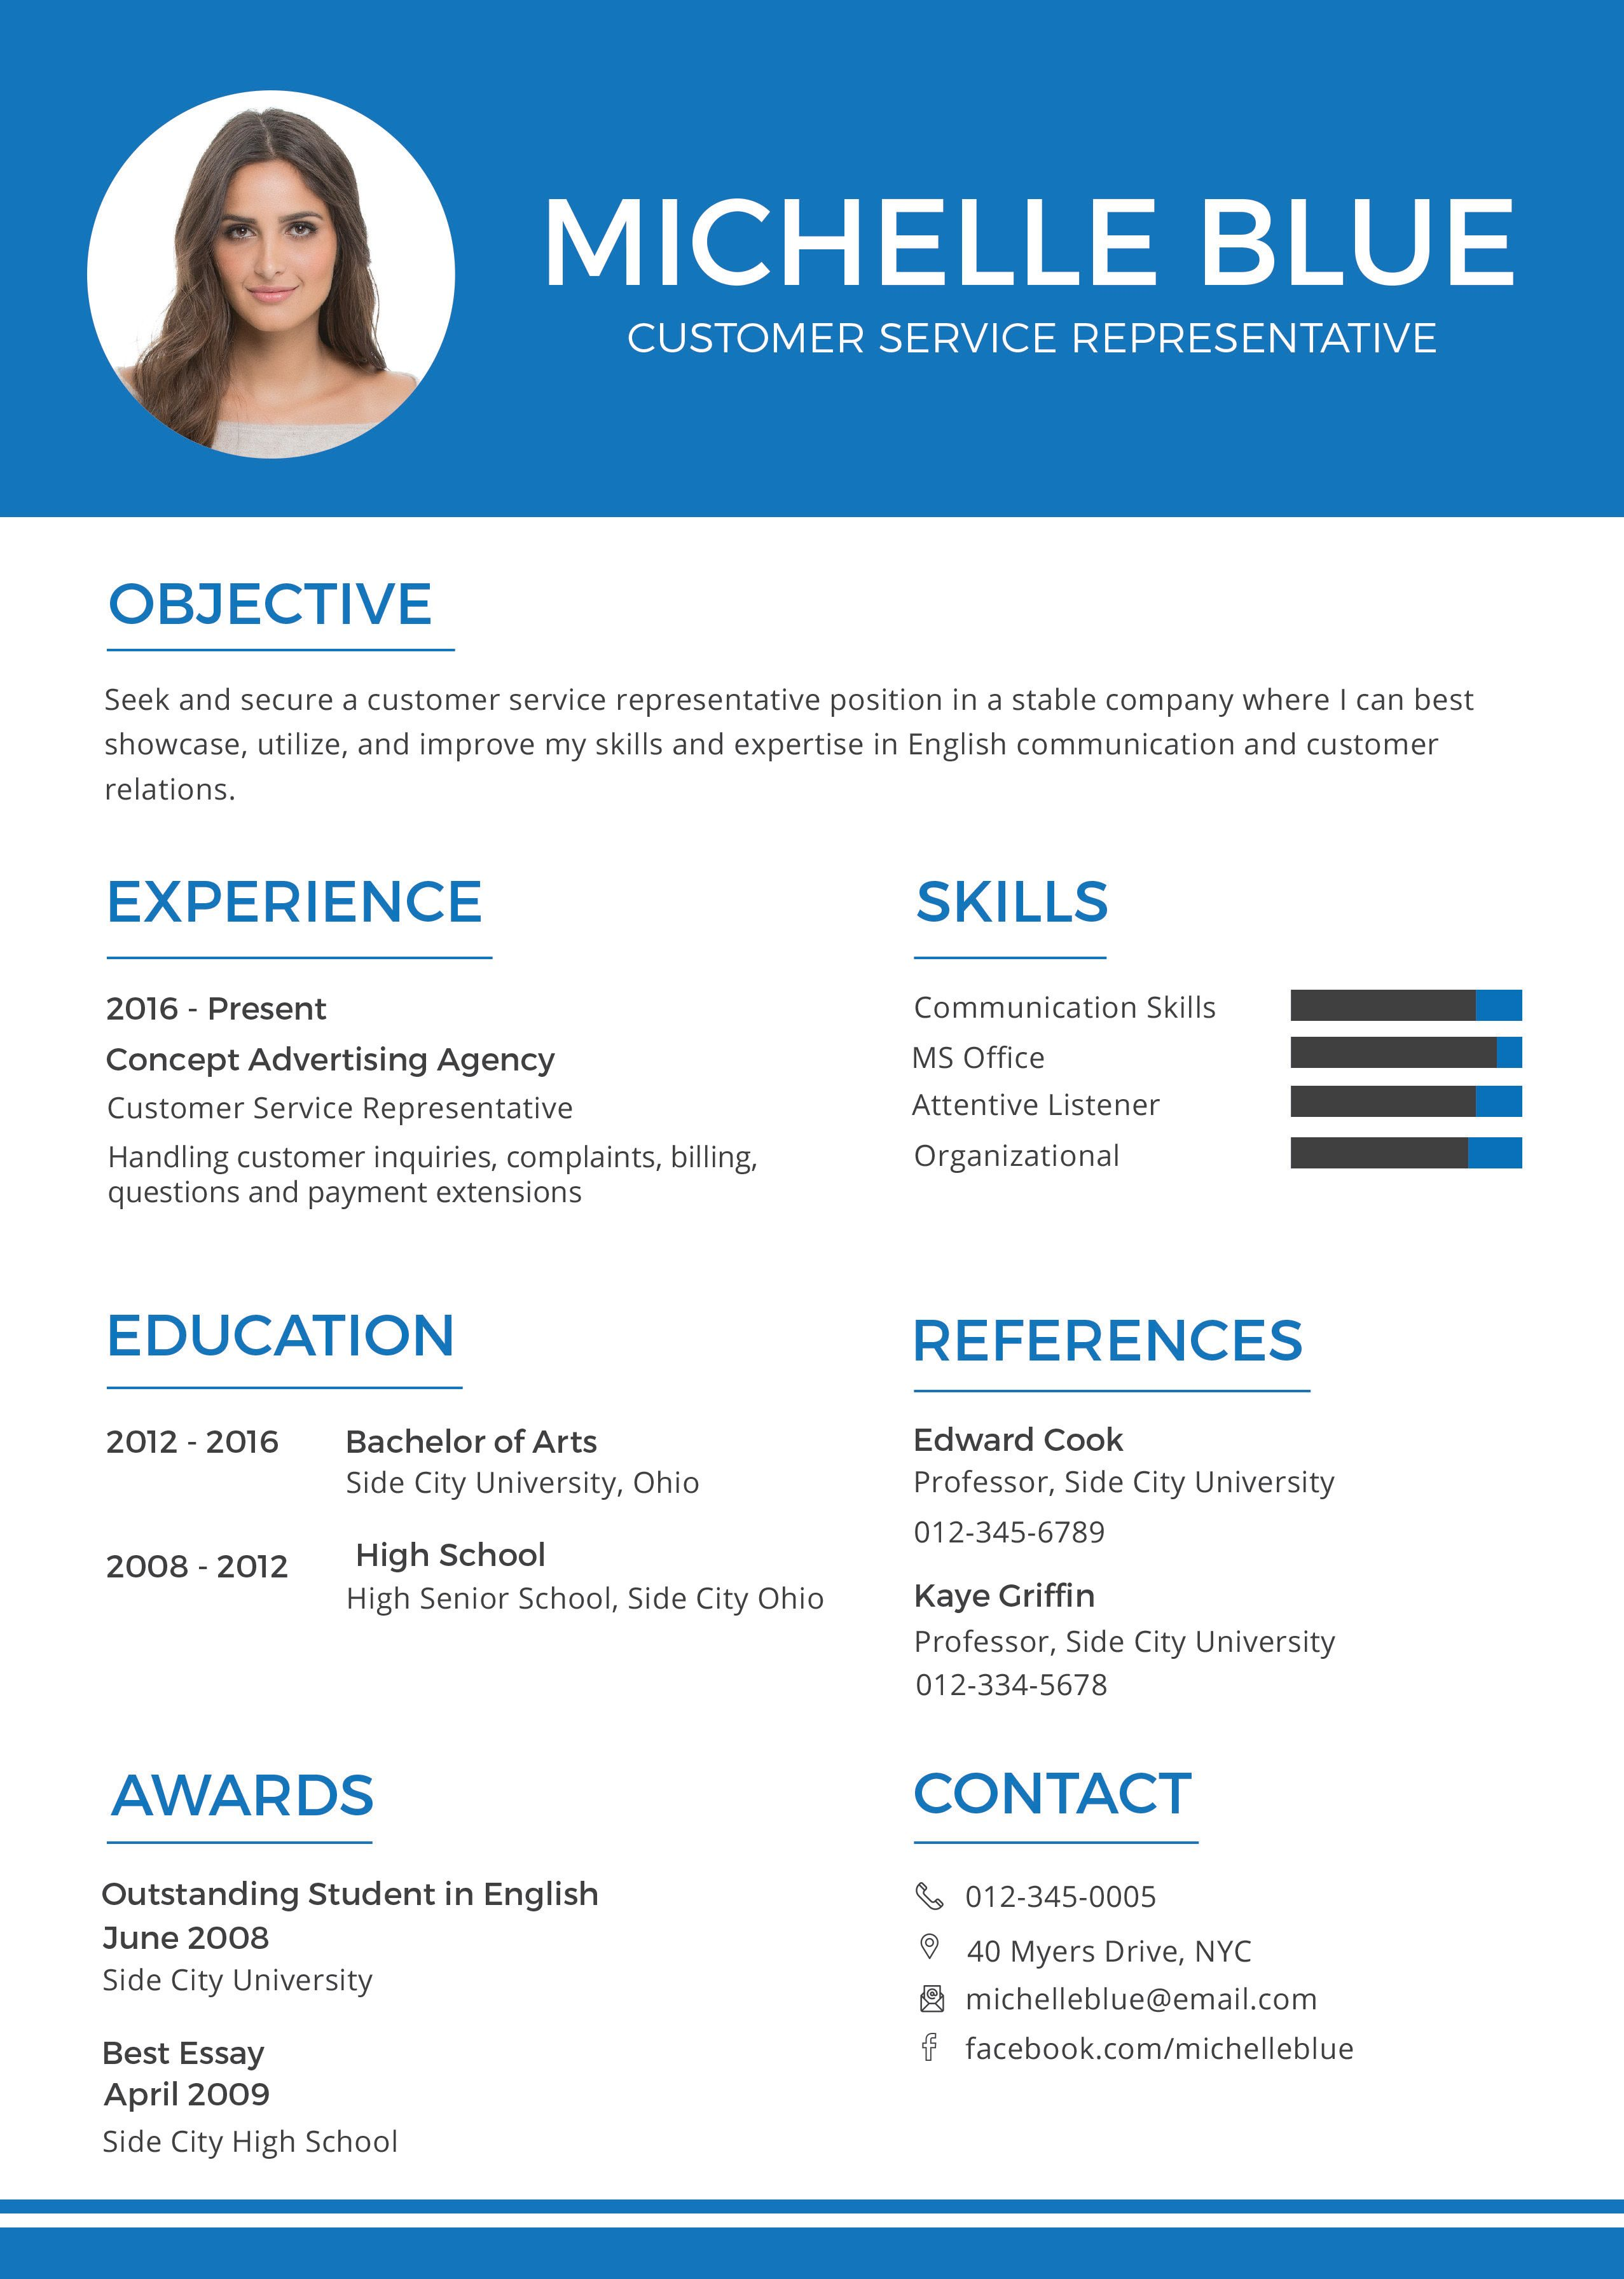 Resume Services Nyc Enchanting Free Customer Service Representative Resume Format  Pinterest .